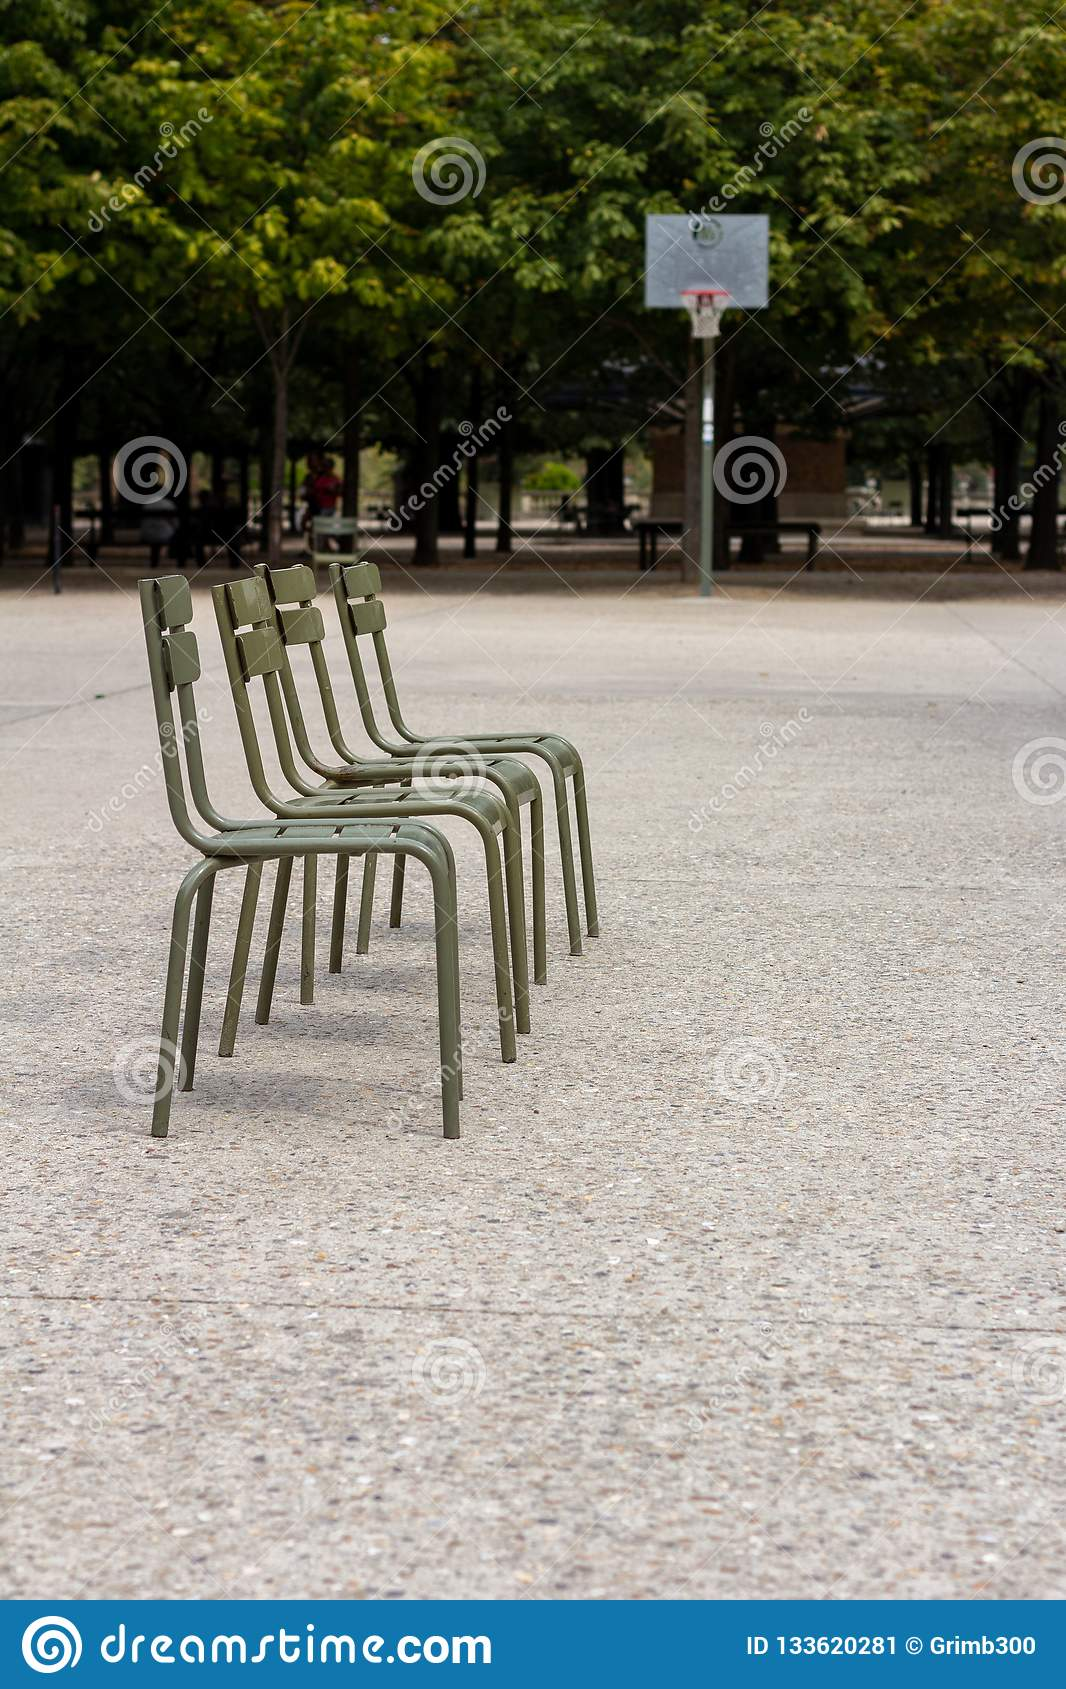 Basketball Chairs Line Of Chairs In Front Of Basketball Goal Stock Image Image Of